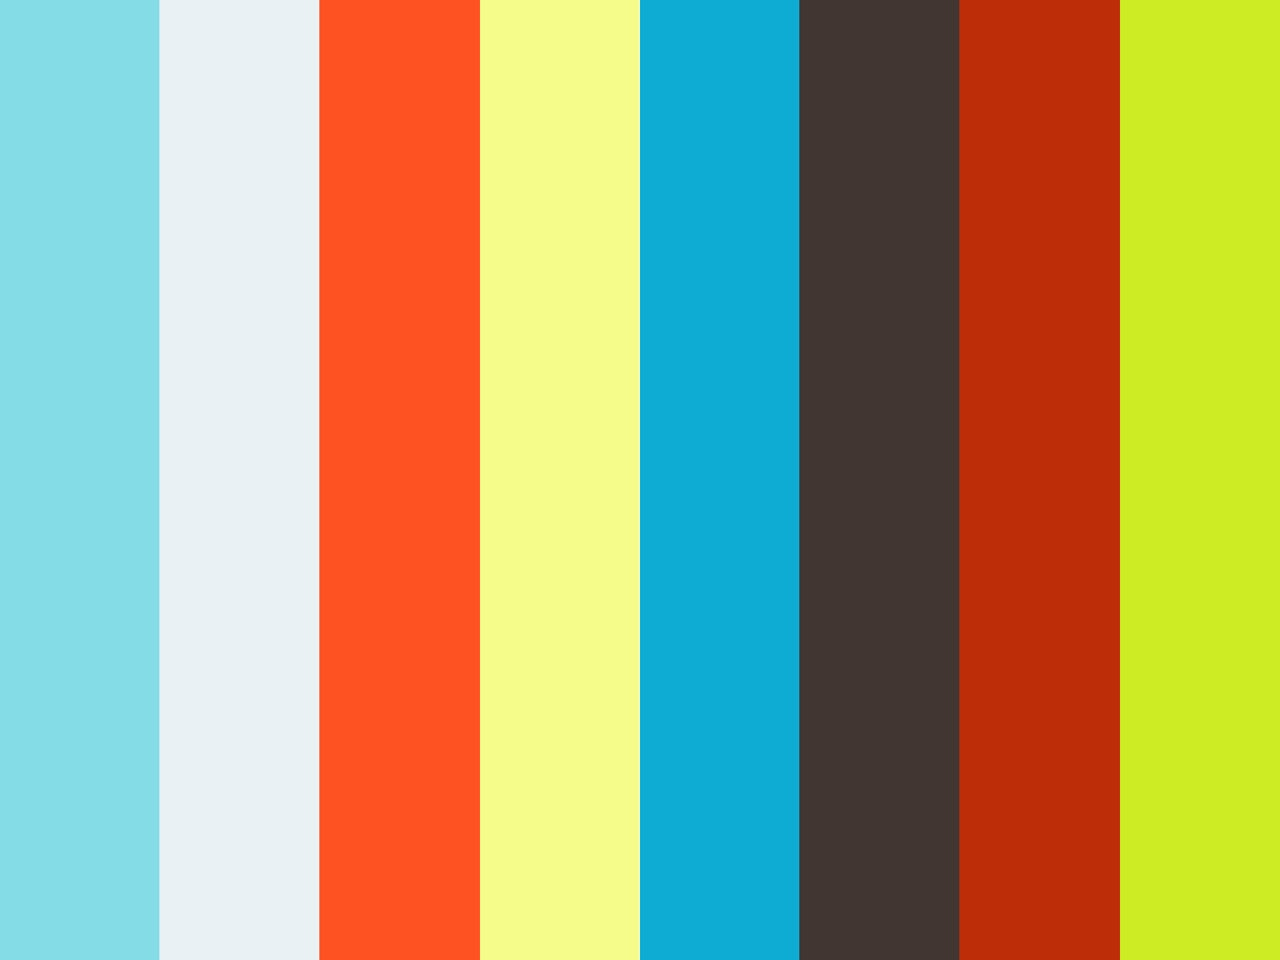 this guys in love with you pare